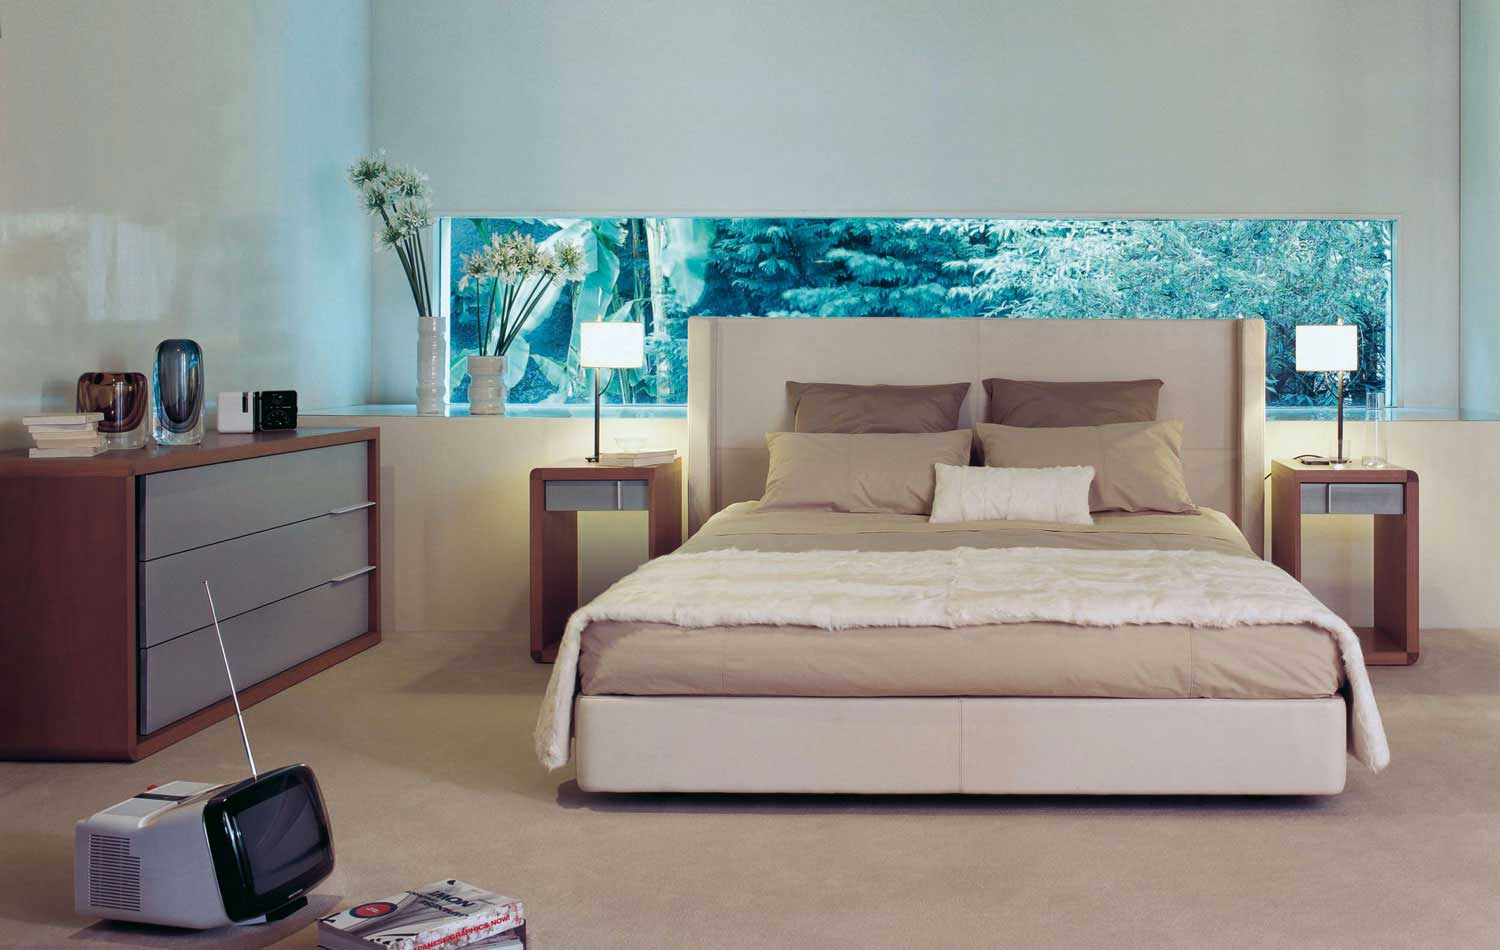 Bedrooms from roche bobois for Stunning bedroom designs